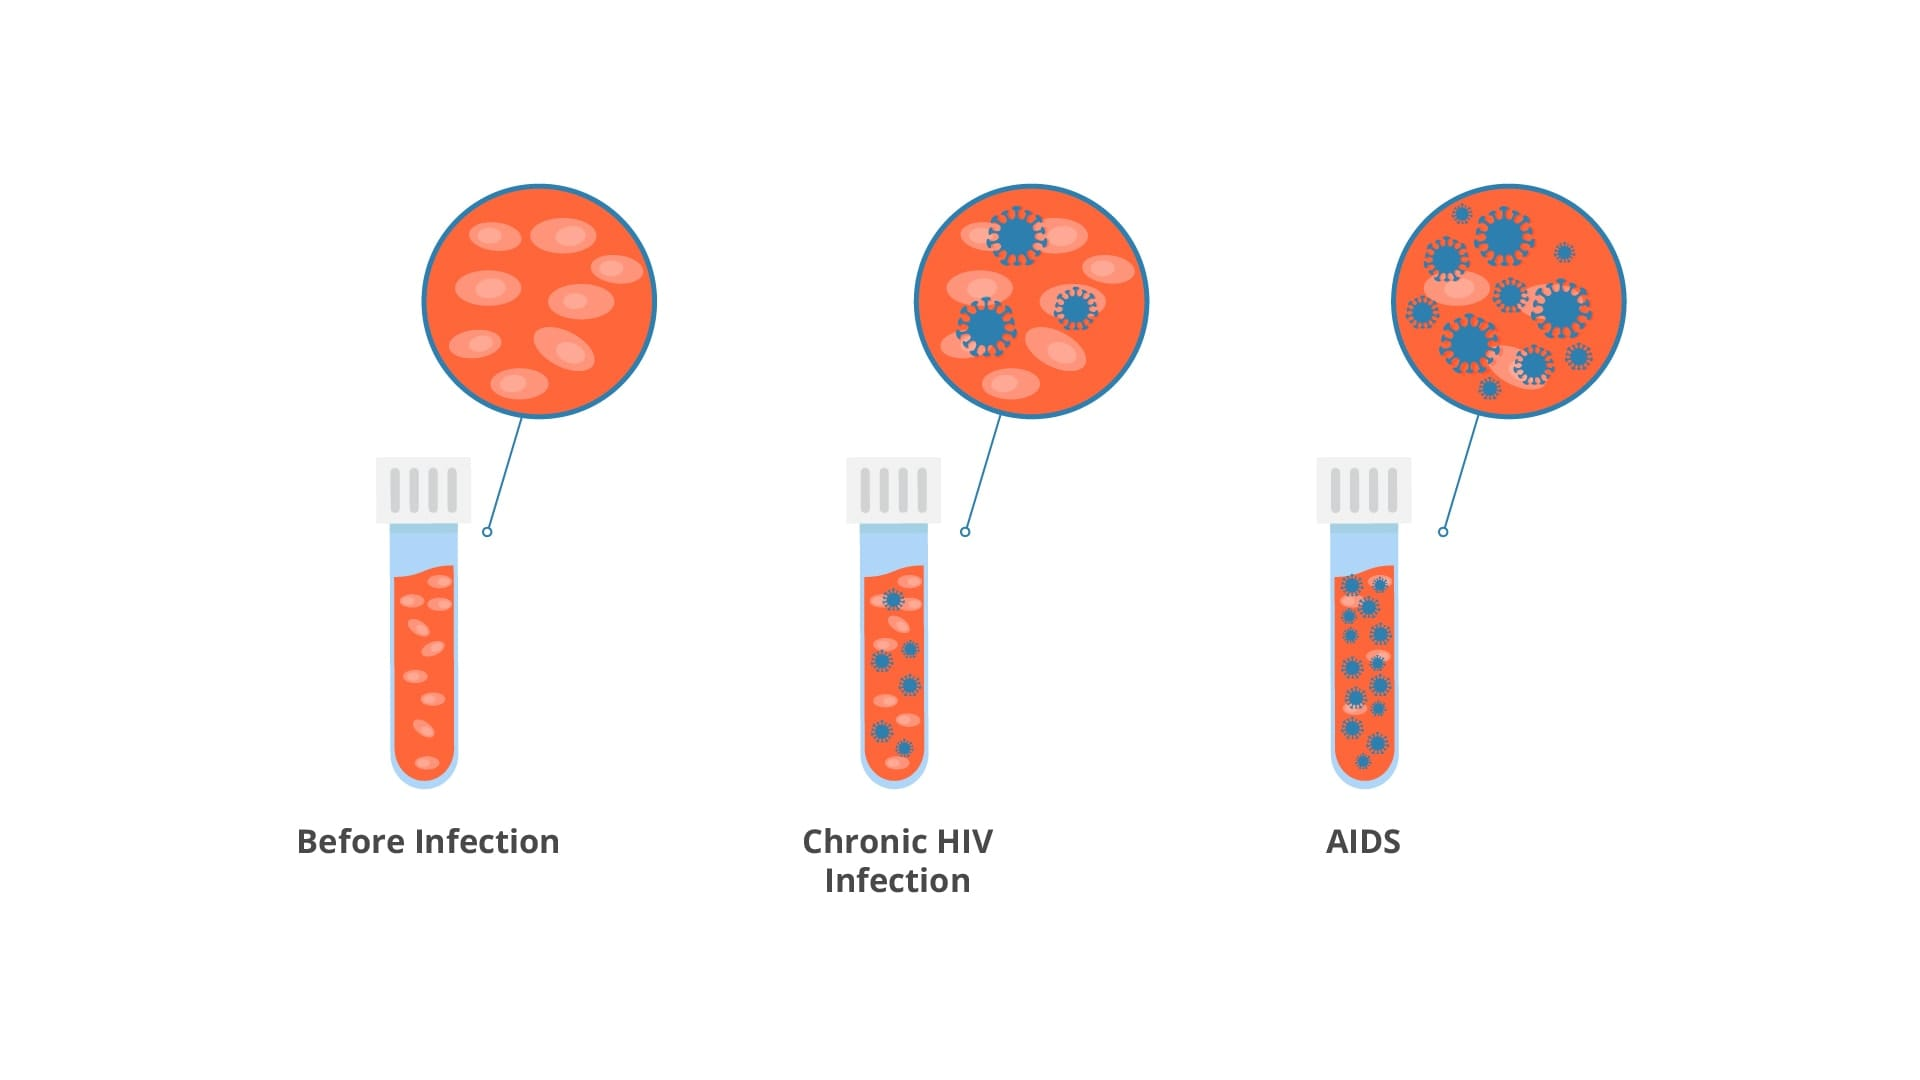 Side by side comparison of cells prior to infection, during chronic HIV infection, and once someone has developed AIDS.